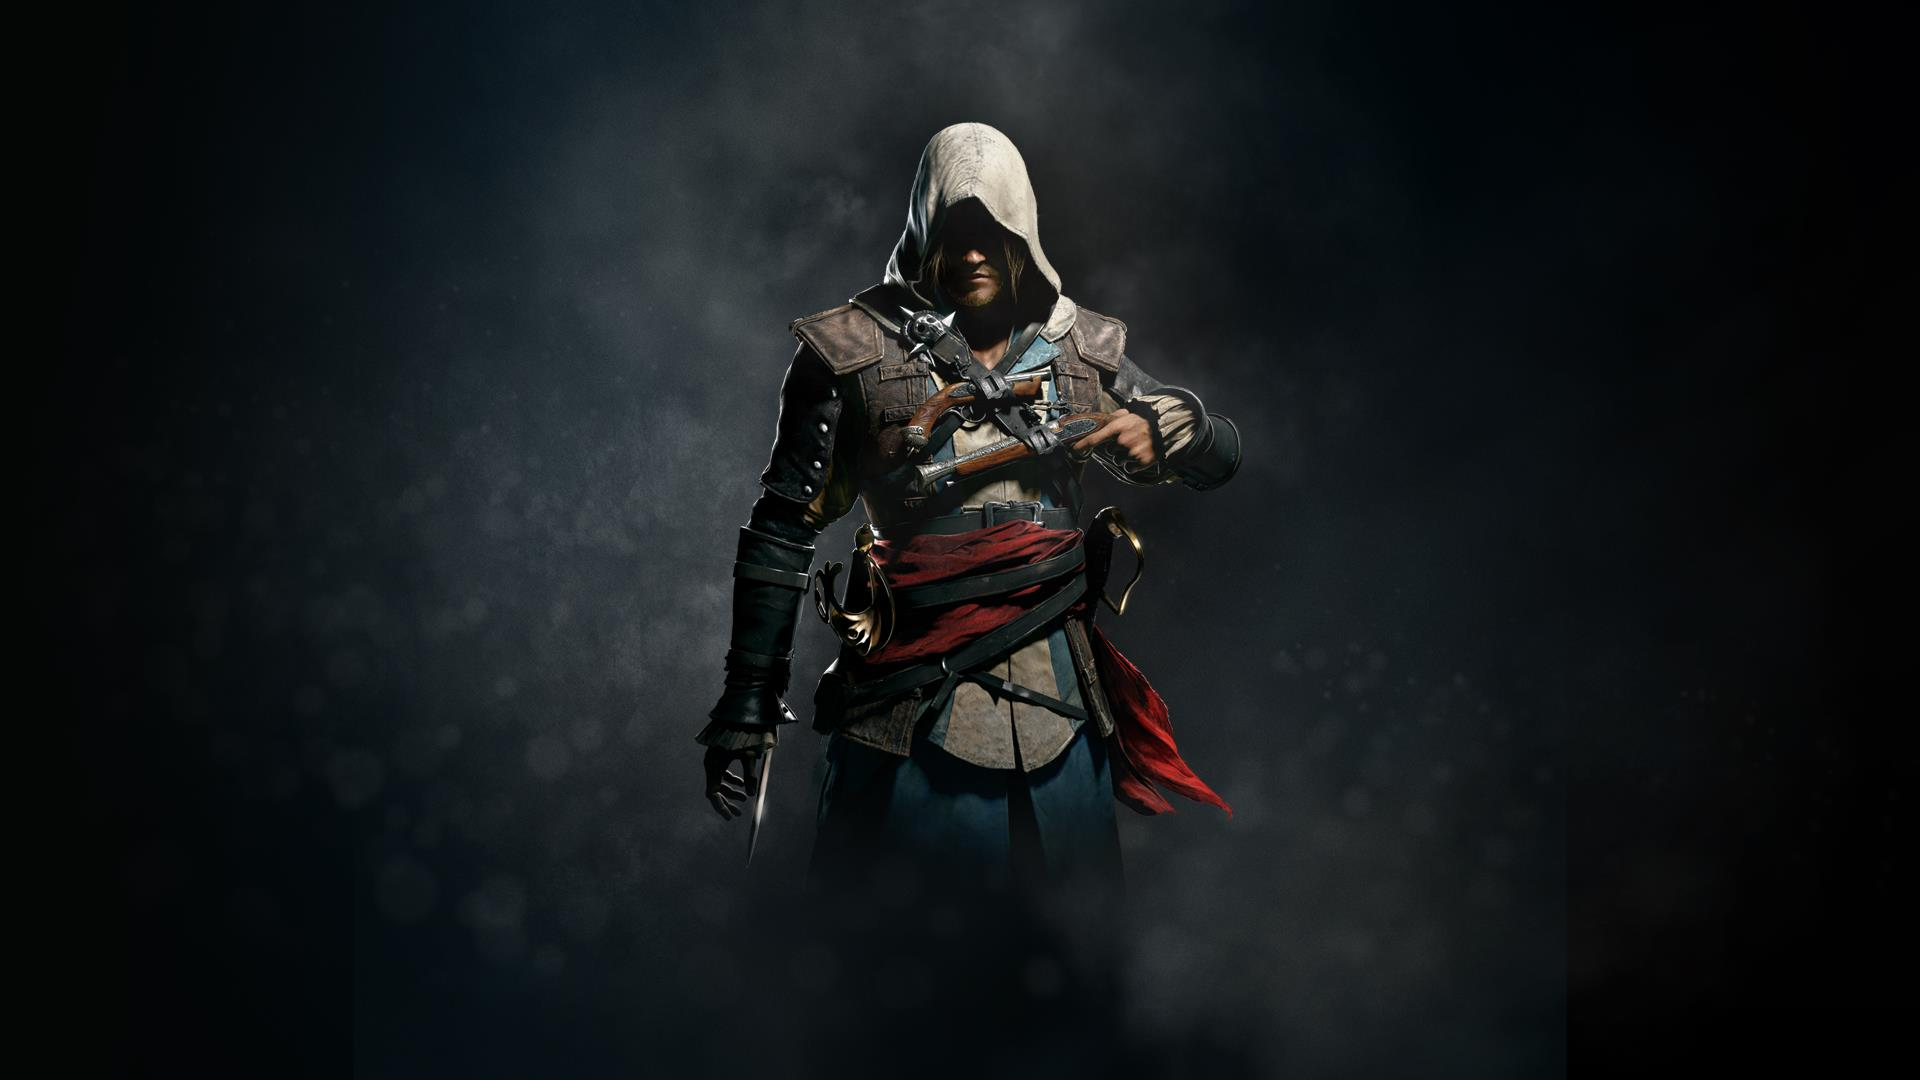 Owned in Assassin's Creed IV: Black Flag